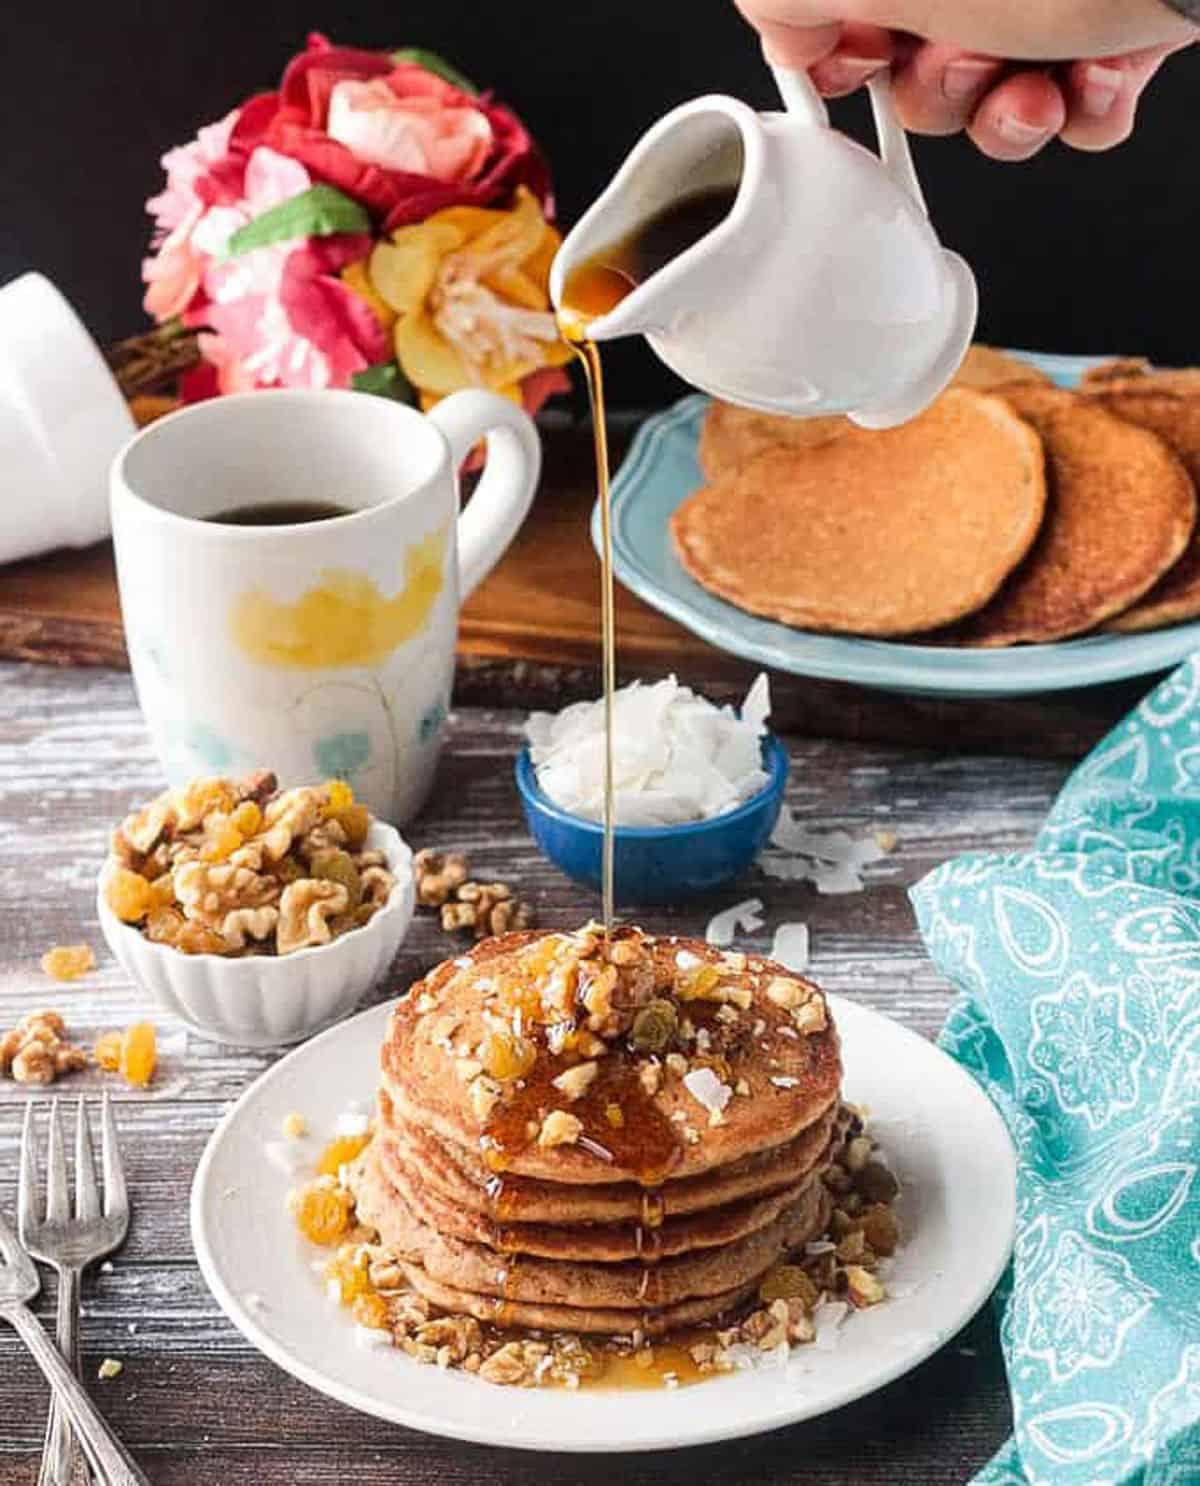 Syrup being poured onto a stack of pancakes from a small white pitcher.